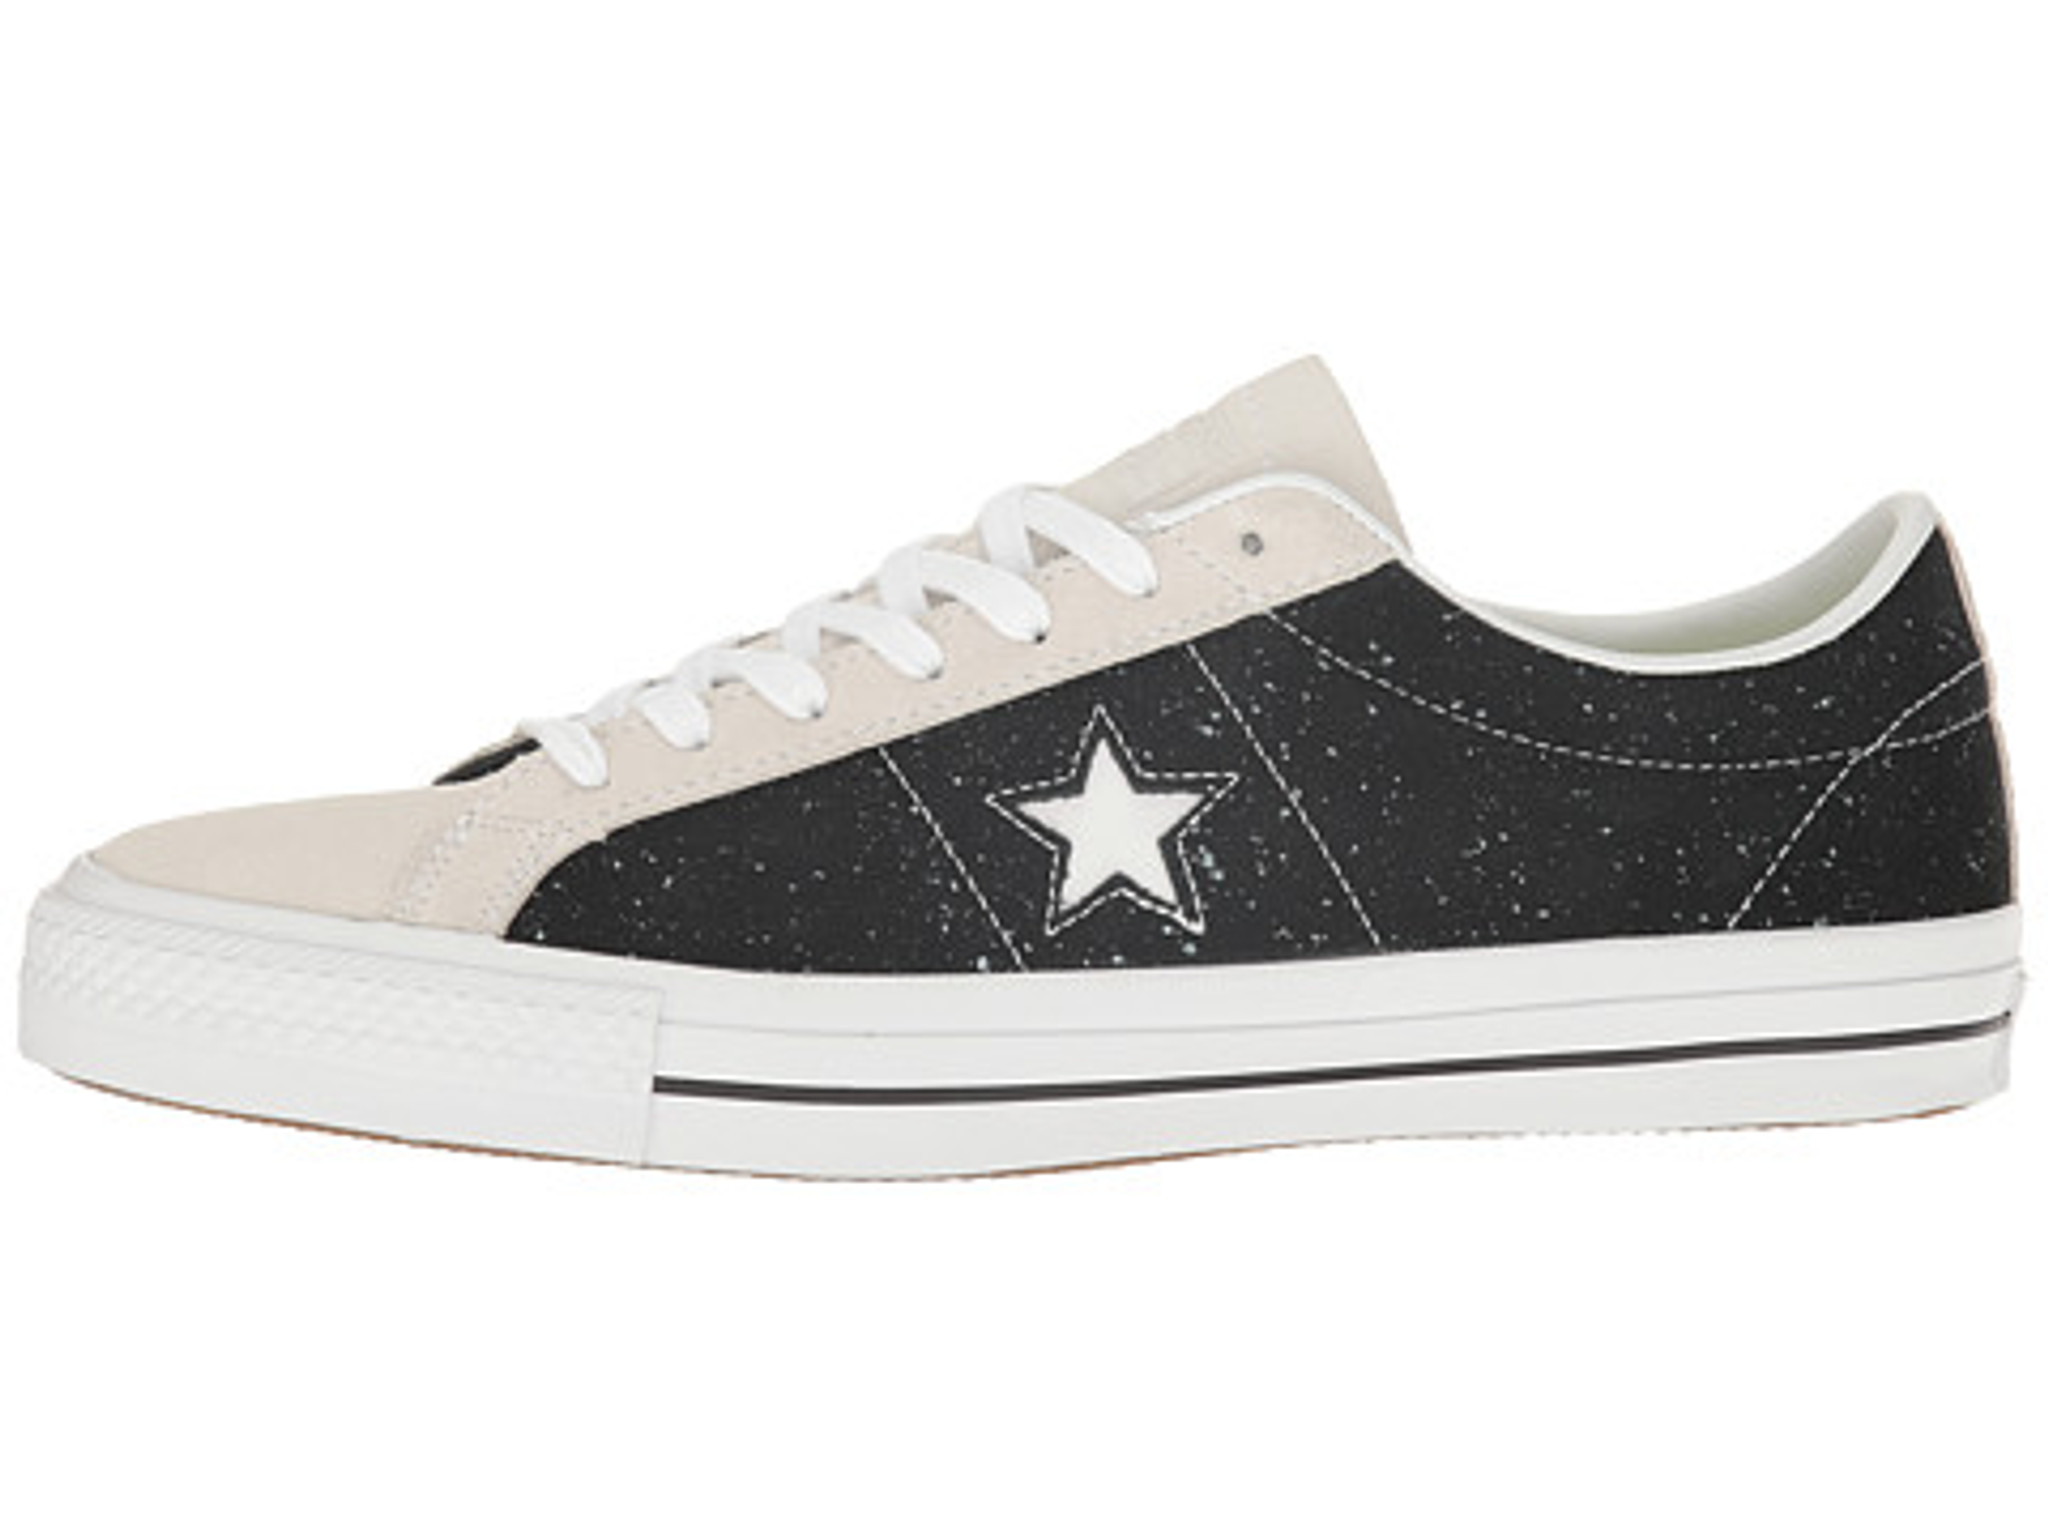 2converse cons one star pro